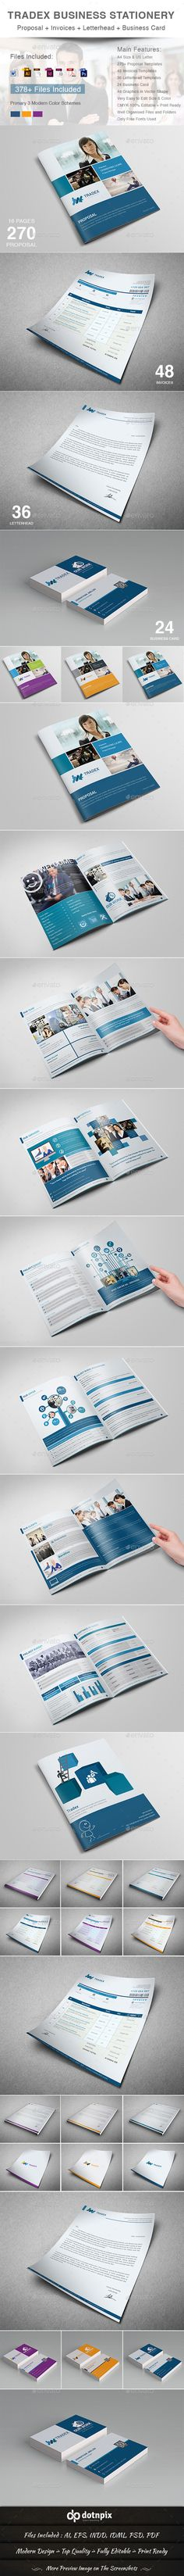 Tradex Business Stationery Template Download: http://graphicriver.net/item/tradex-business-stationery/10870621?ref=ksioks